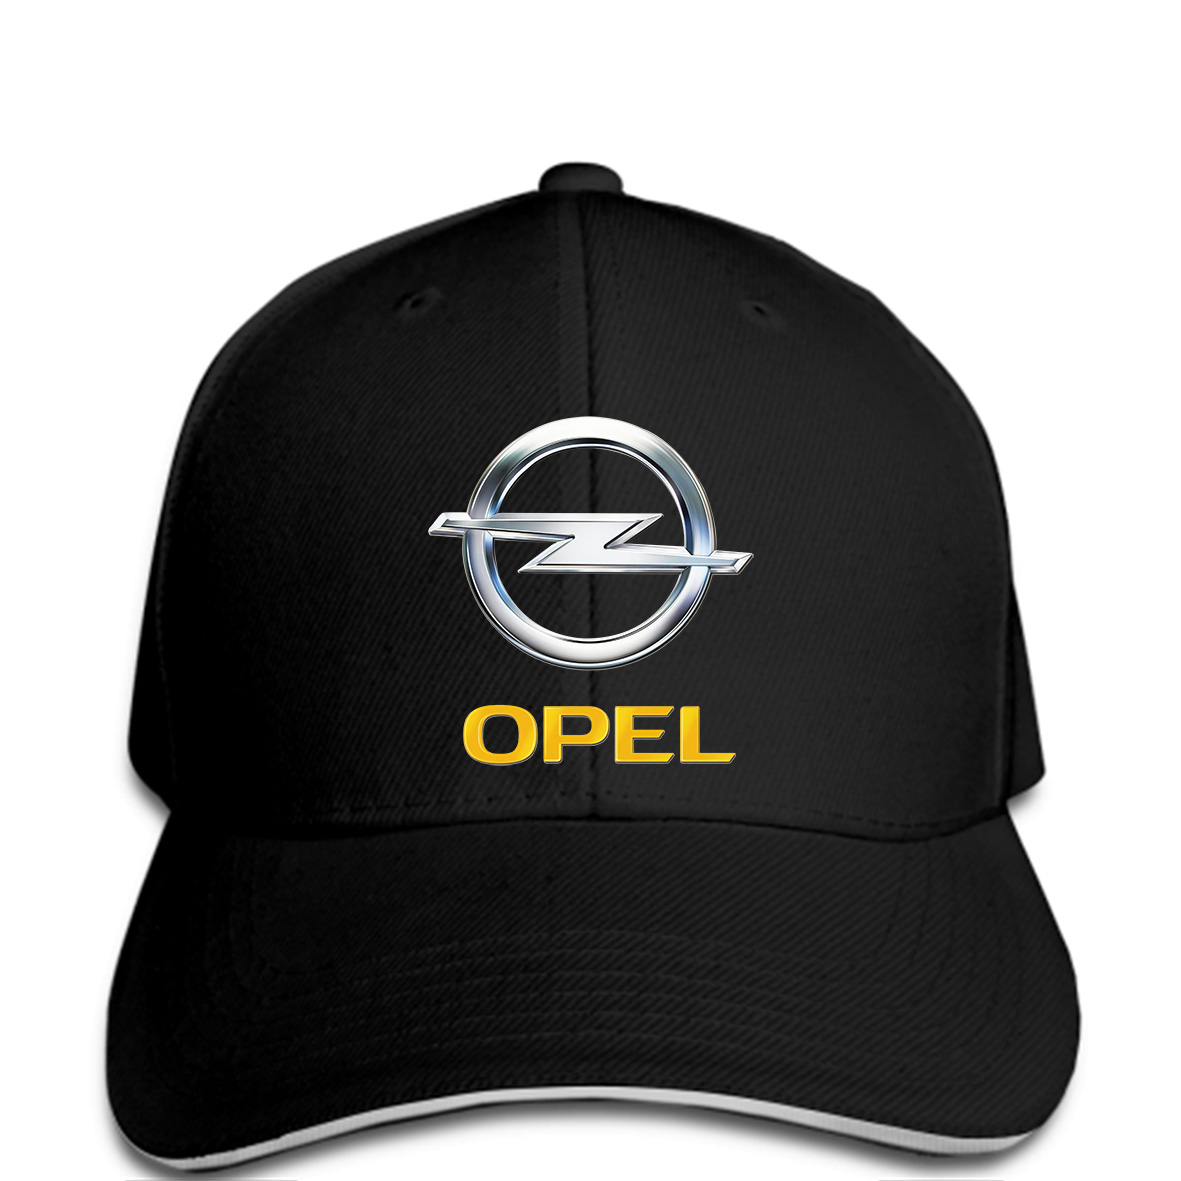 small resolution of men baseball cap opel logo cars fashion funny hat novelty tsnapback women in baseball caps from men s clothing accessories on aliexpress com alibaba